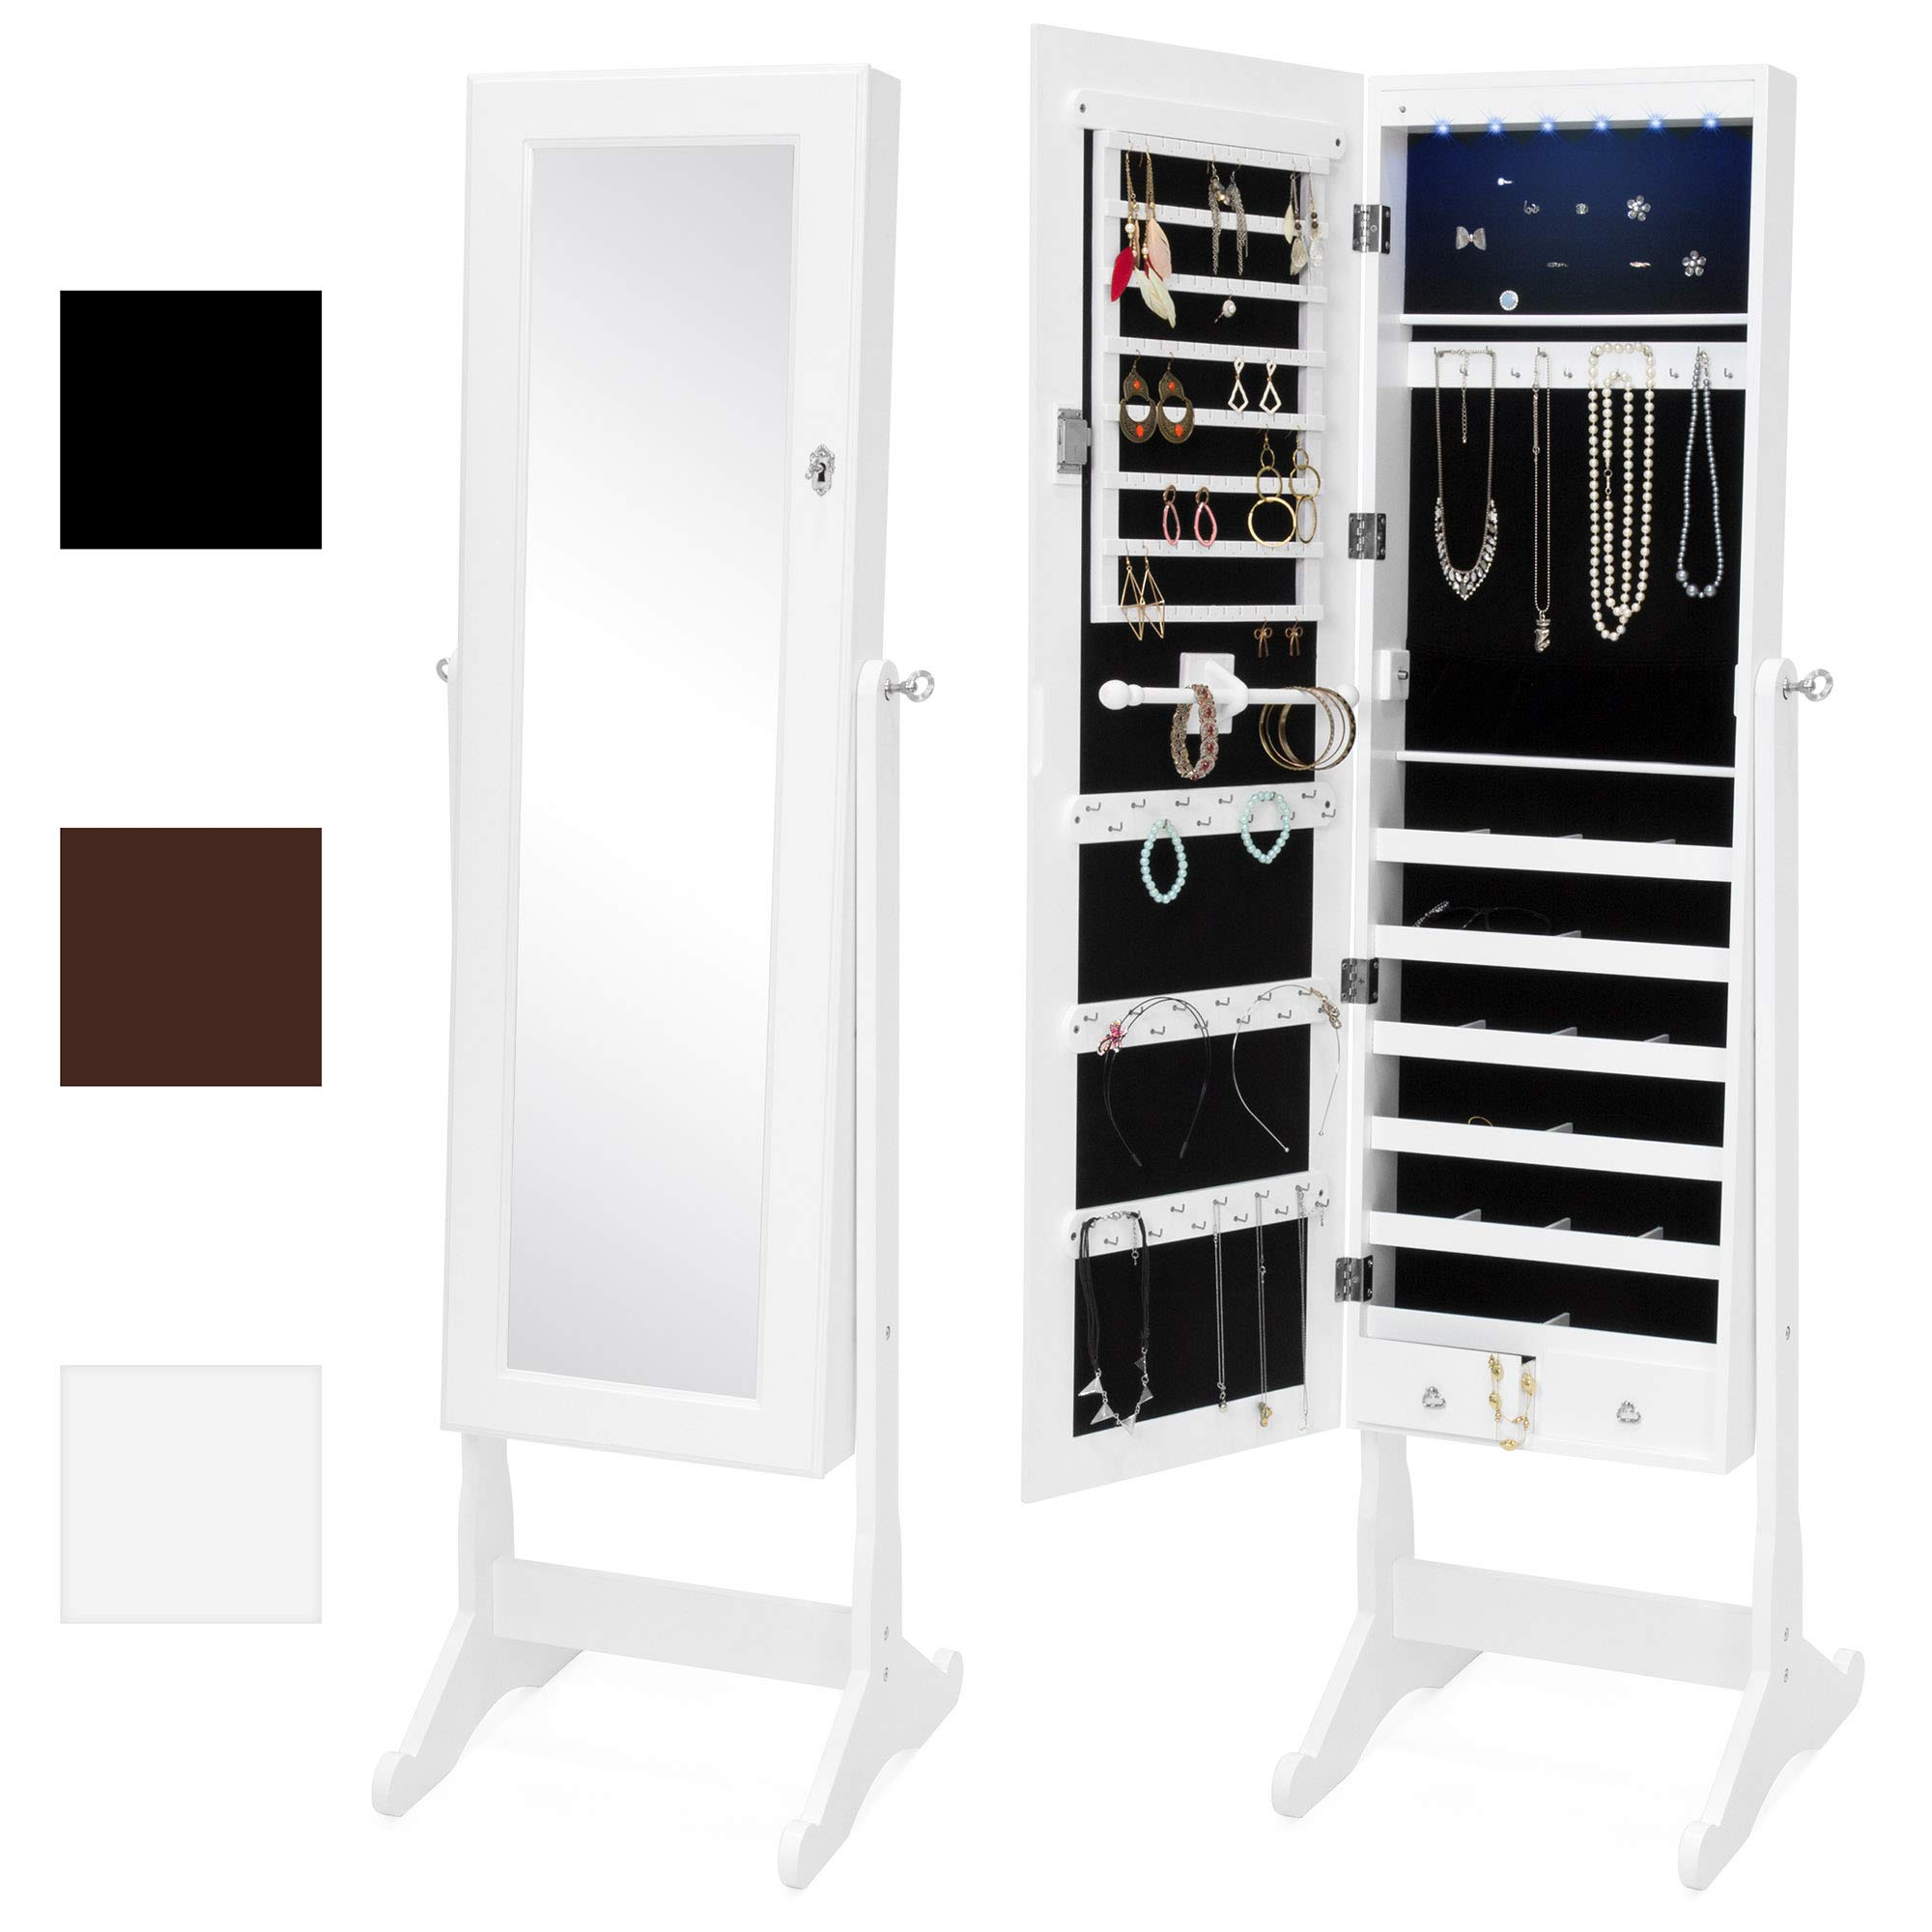 Best Choice Products 6-Tier Full Length Standing Mirrored Lockable Jewelry Storage Organizer Cabinet Armoire with 6 LED Interior Lights, 3 Angle Adjustments, Velvet Lining, White by Best Choice Products